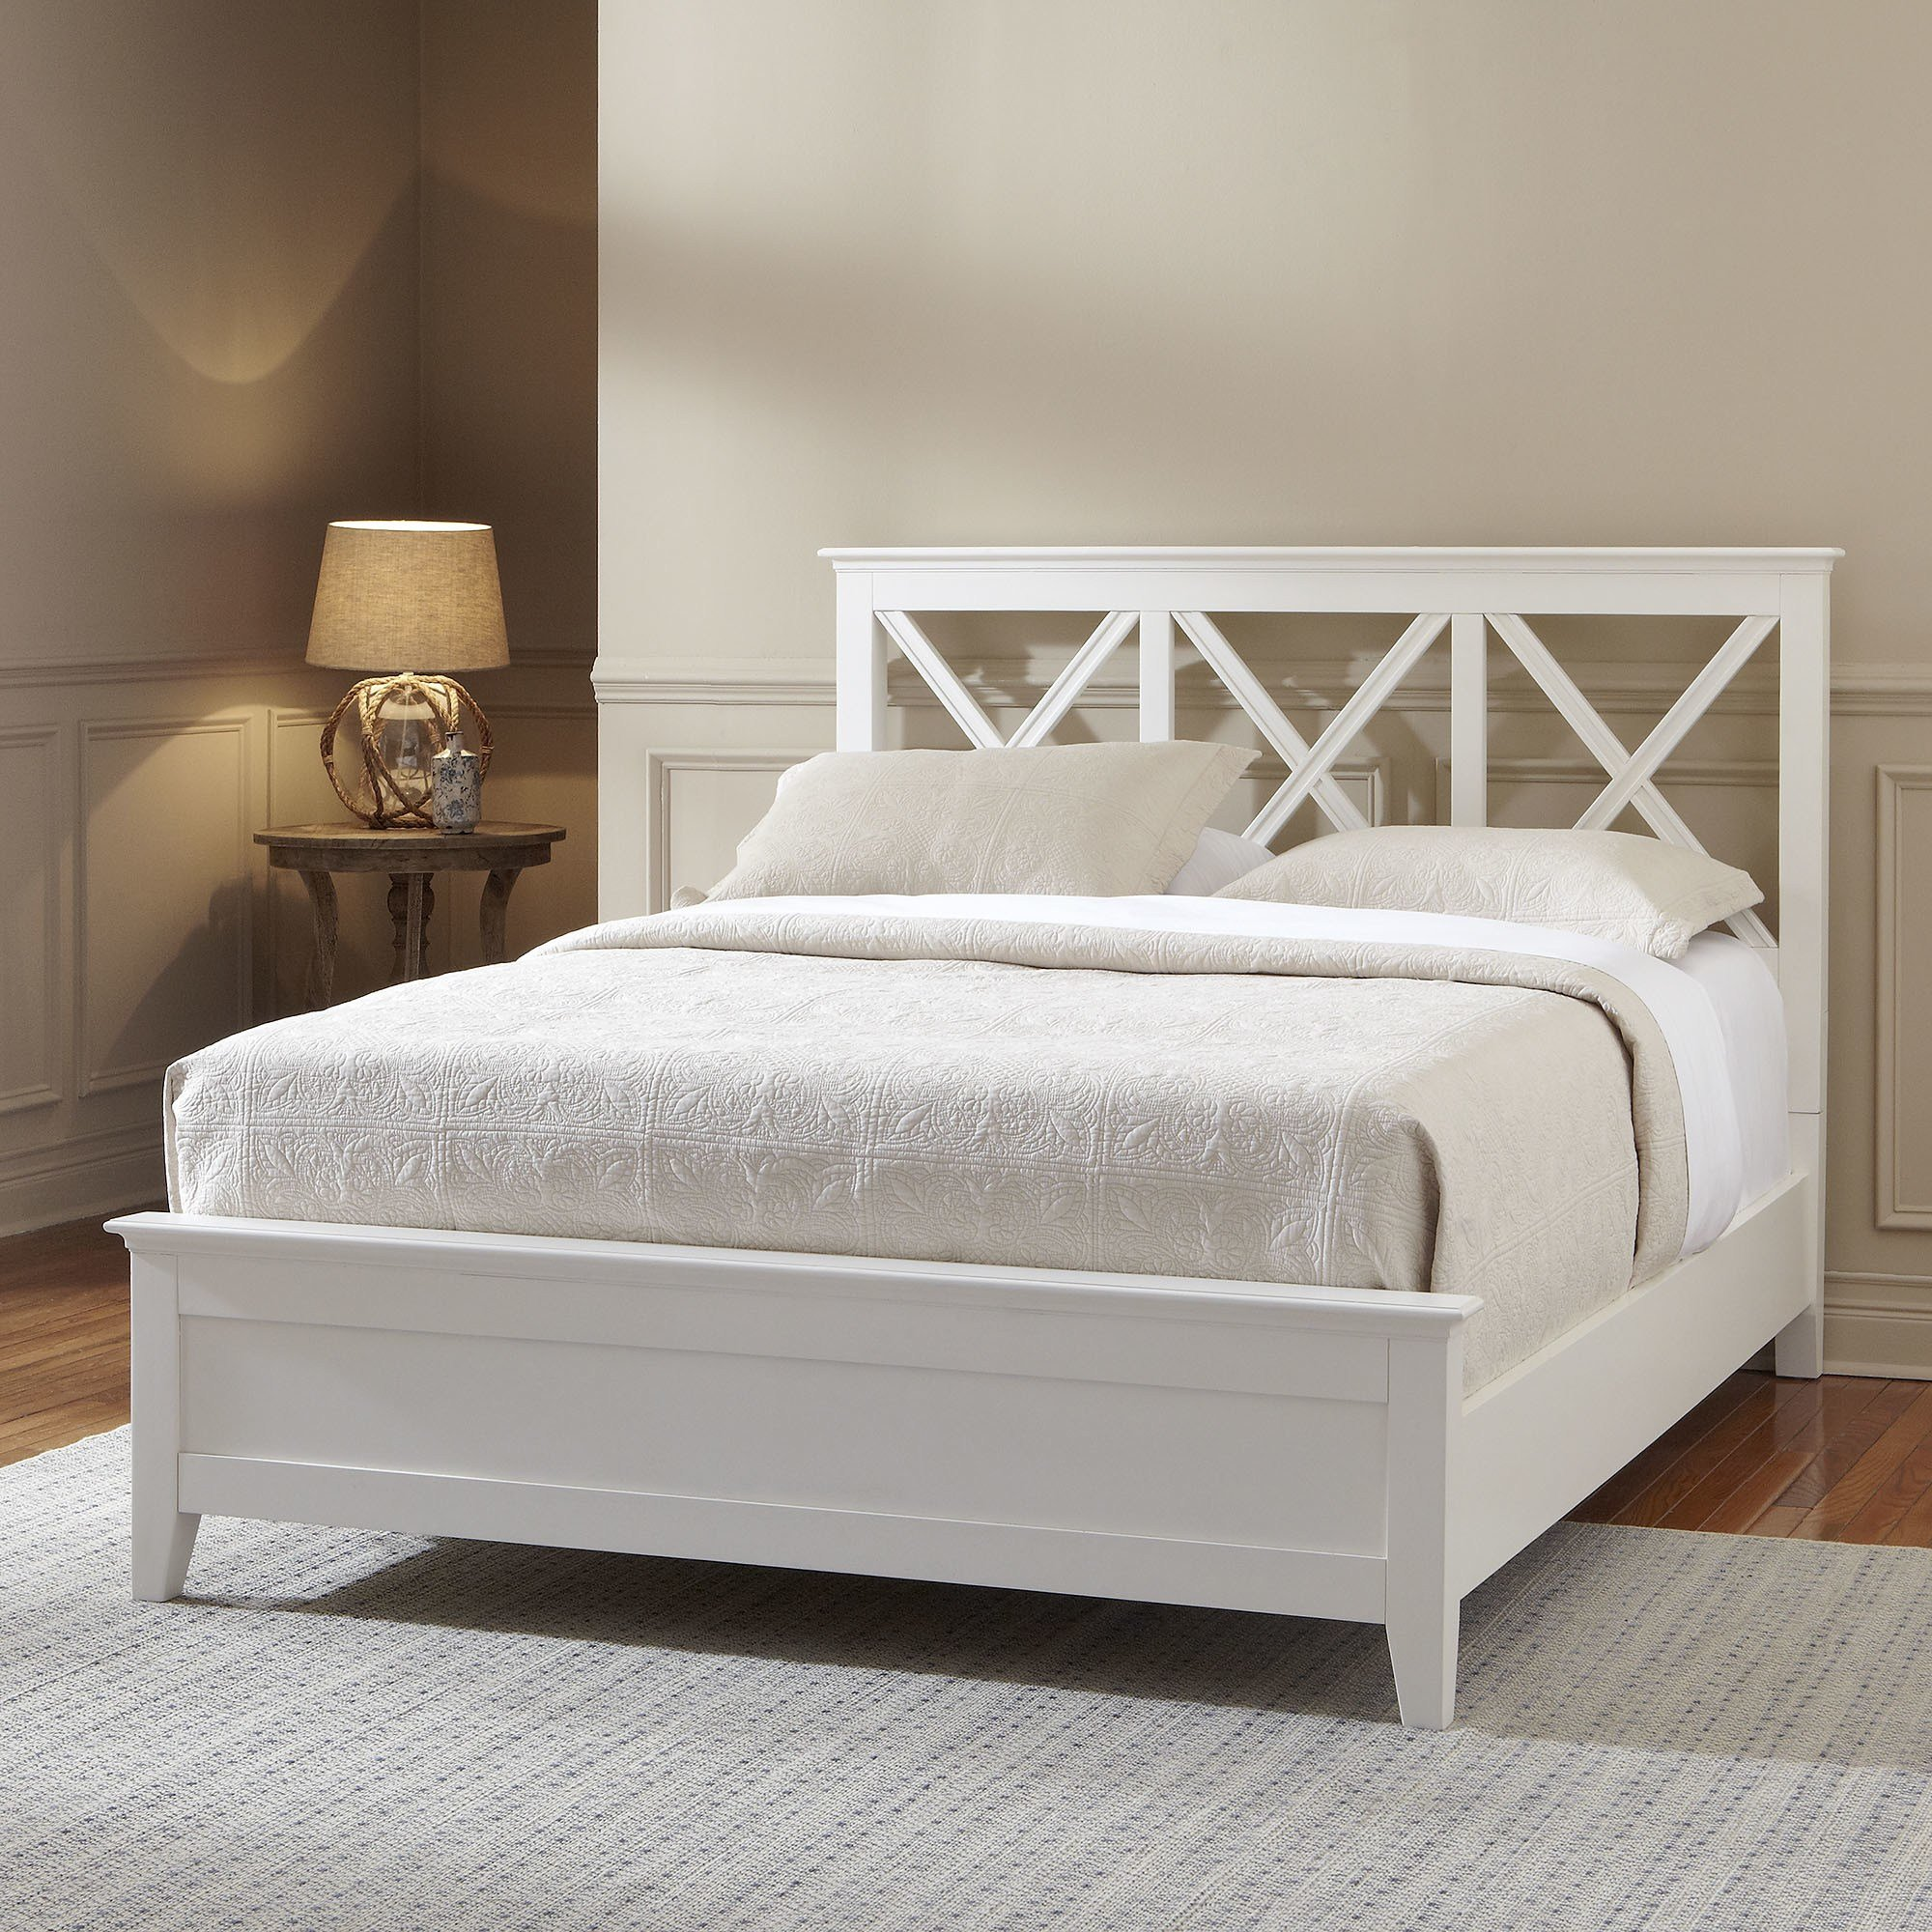 Best Birch Lane Potter Customizable Bedroom Set Reviews With Pictures